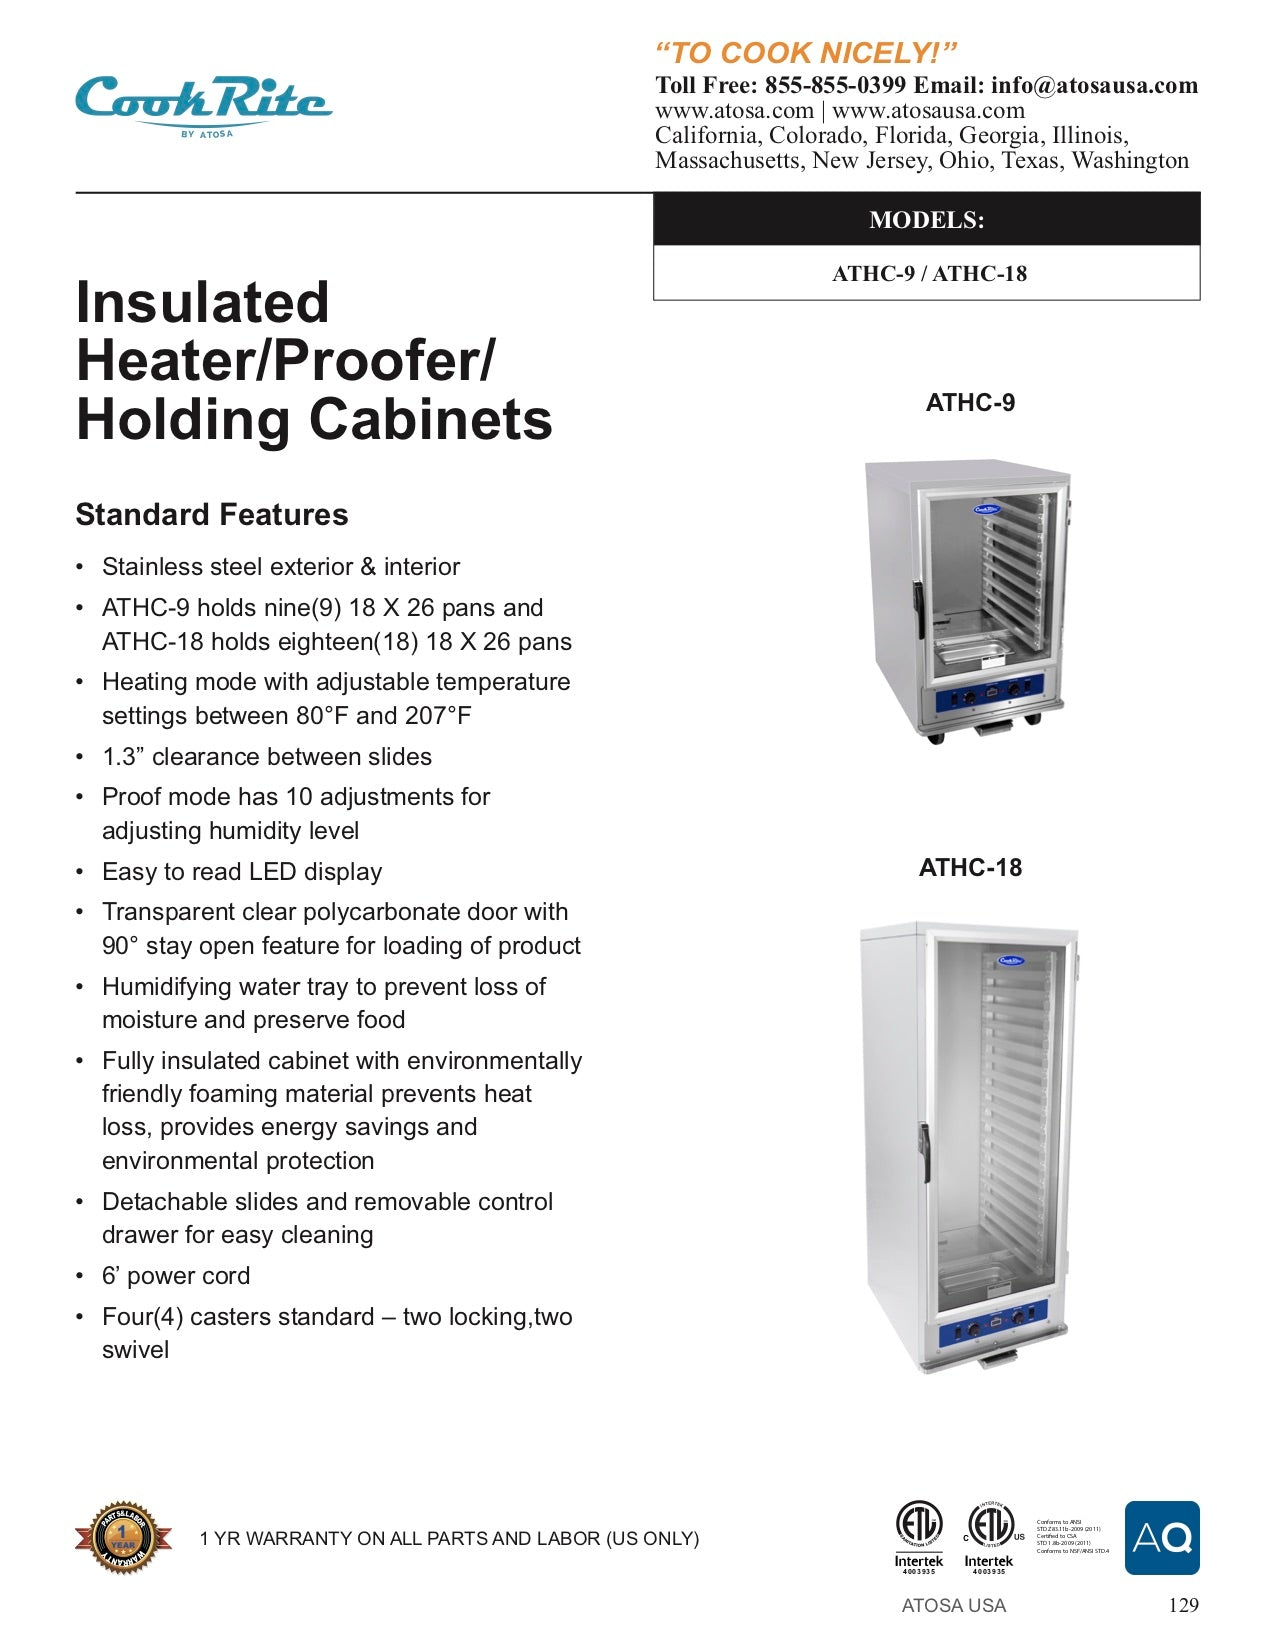 Cook-Rite ATHC-18 Insulated Heater/ Proofer / Holding Cabinet